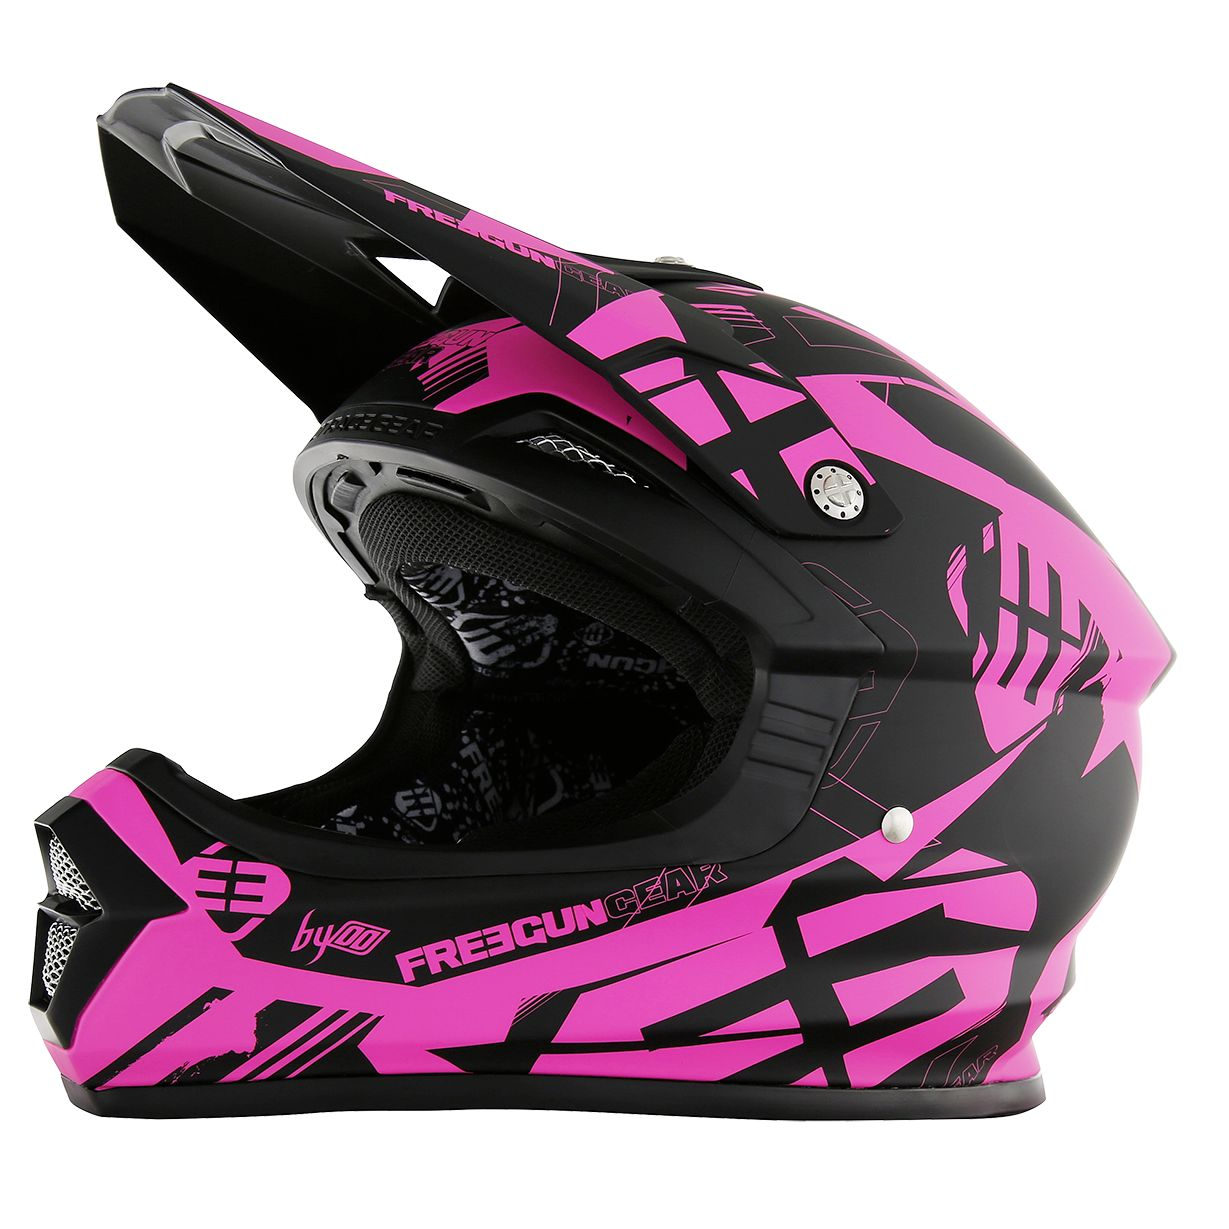 Casque cross Shot destockage XP4 LINK NEON ROSE MAT  2017